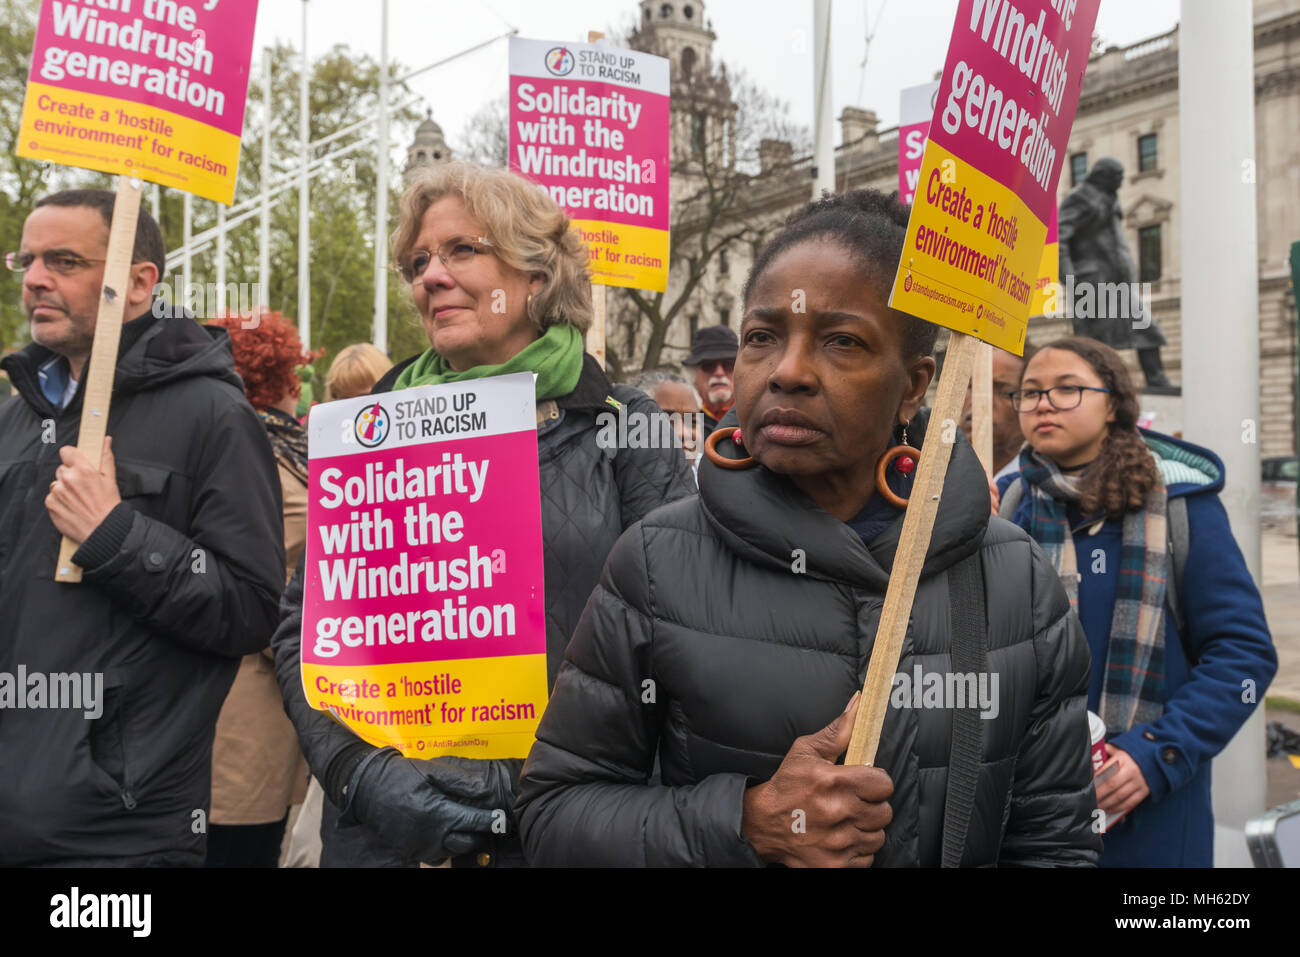 London, UK. 30th April 2018.  People with placards at the protest in support of the petition calling for an end to the deportations of migrants in the 'Windrush generation' who arrived in Britain between 1948 and 1971. It calls on the government to change the burden of proof which means they are now required to prove their right to remain, and to provide compensation for any loss and hurt.. re for many years, paying taxes and raising families here and have long regard Credit: Peter Marshall/Alamy Live News - Stock Image